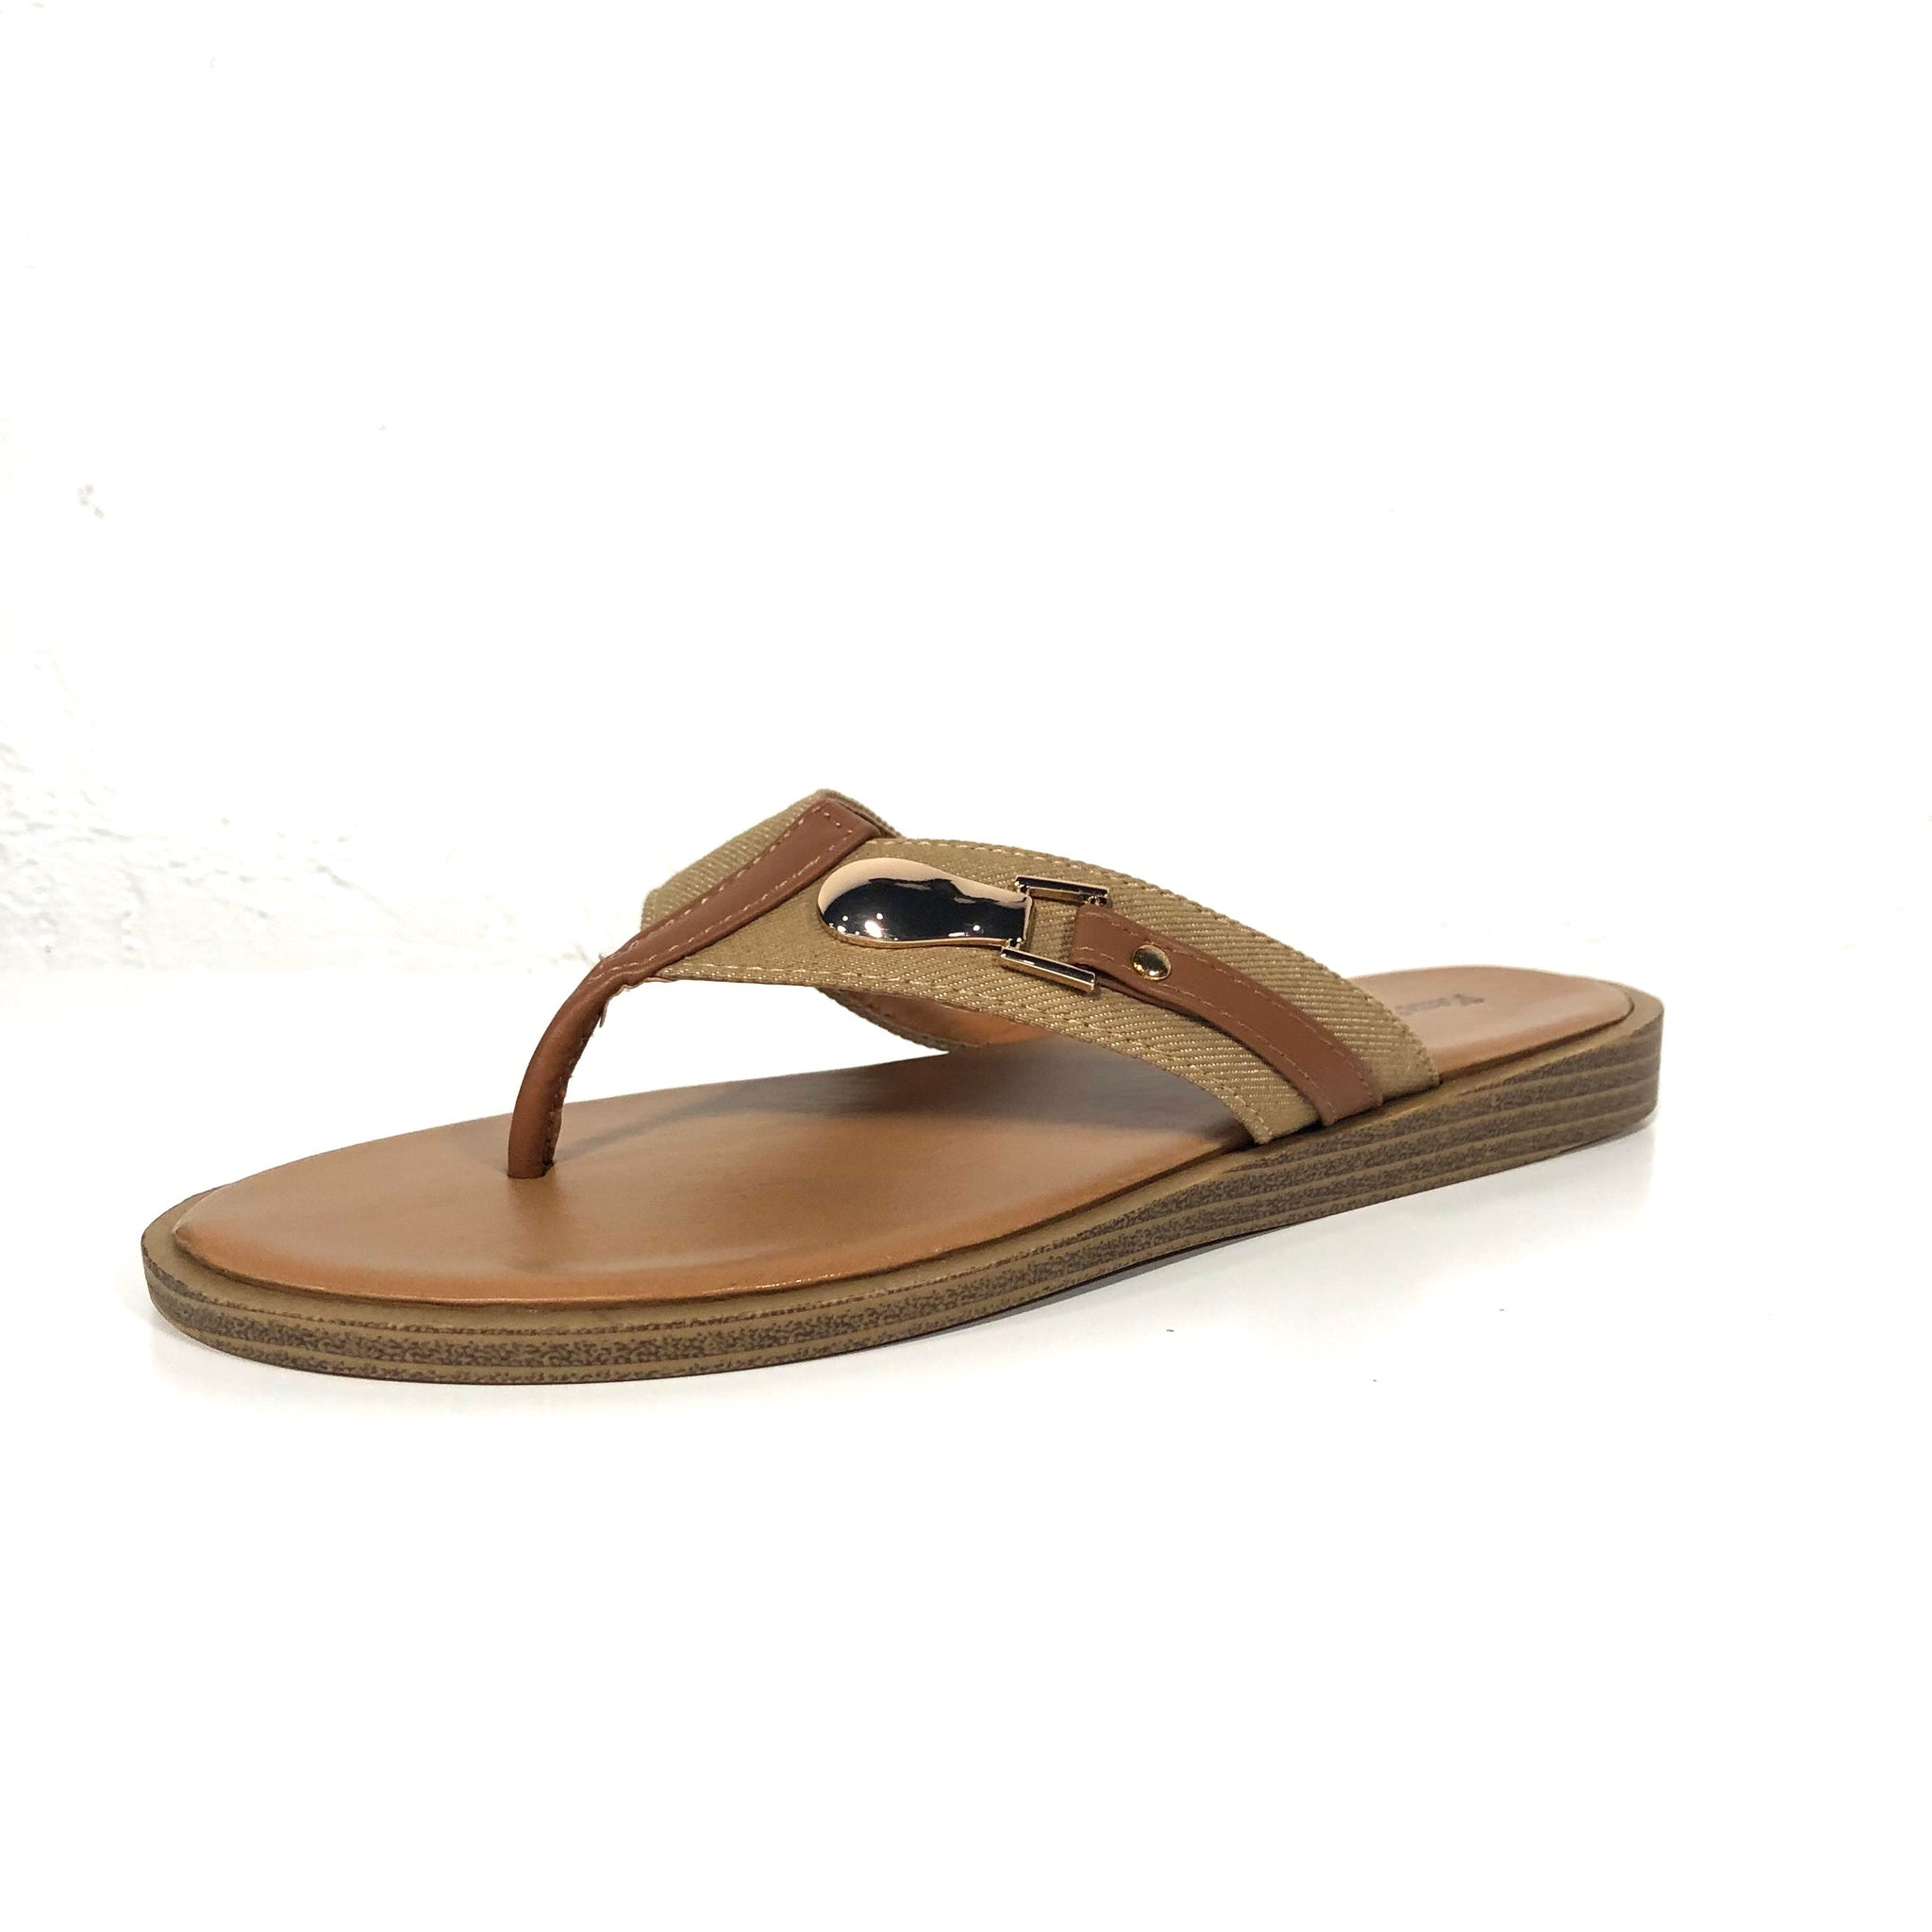 Lizzie Nude Brown Flip Flop Sandals - The Shoe Trunk